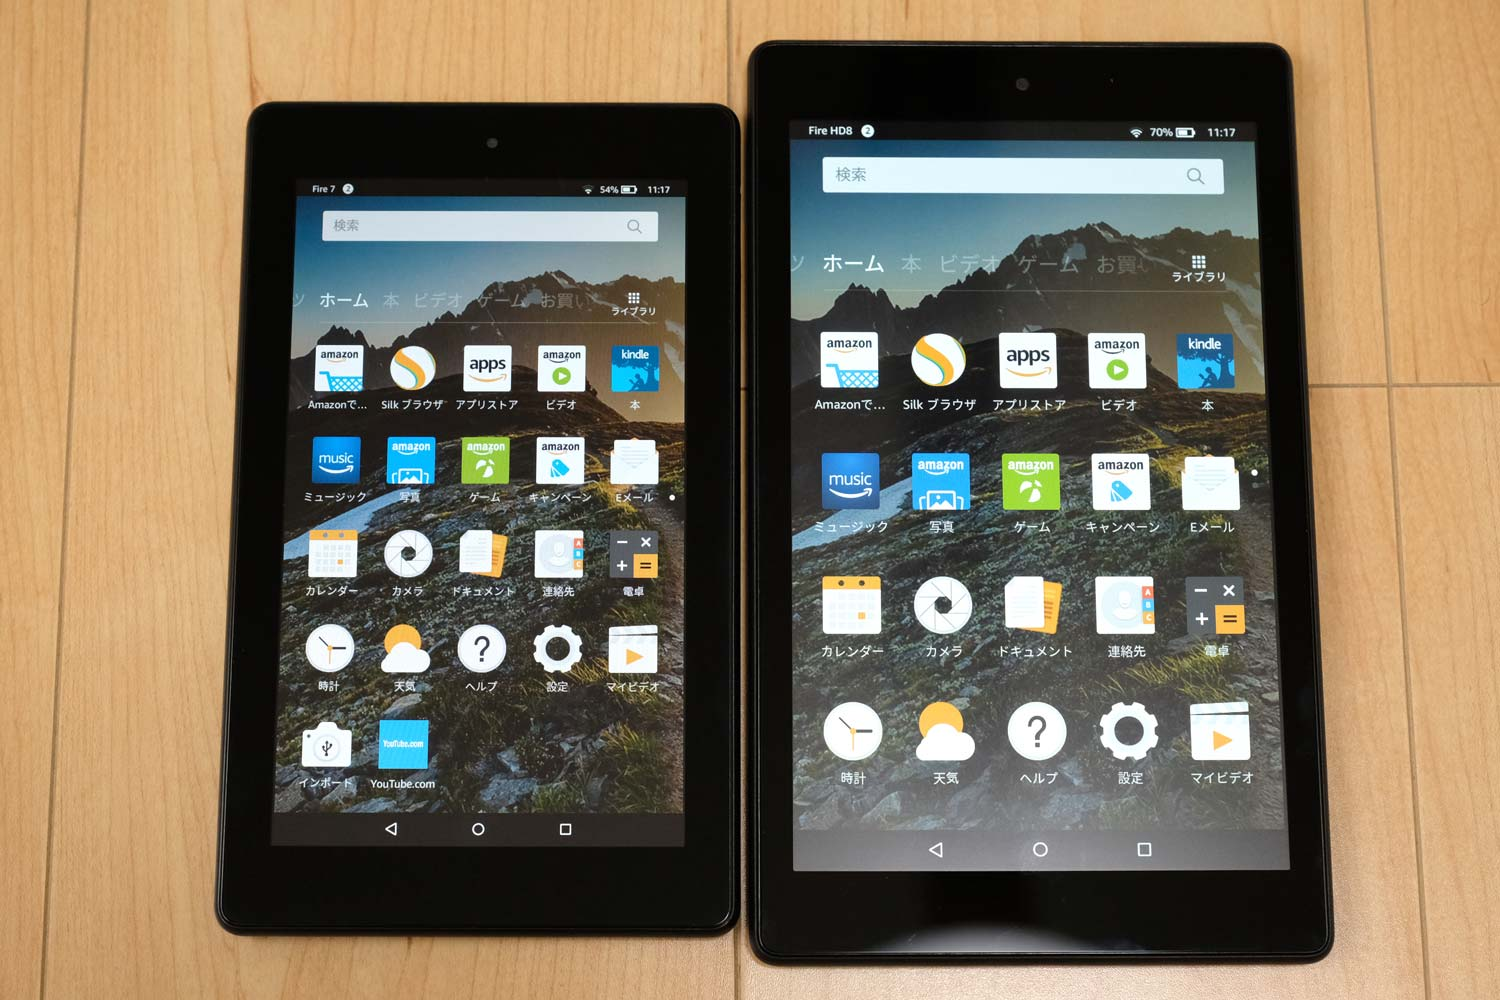 Fire 7 vs Fire HD 8 ホーム画面